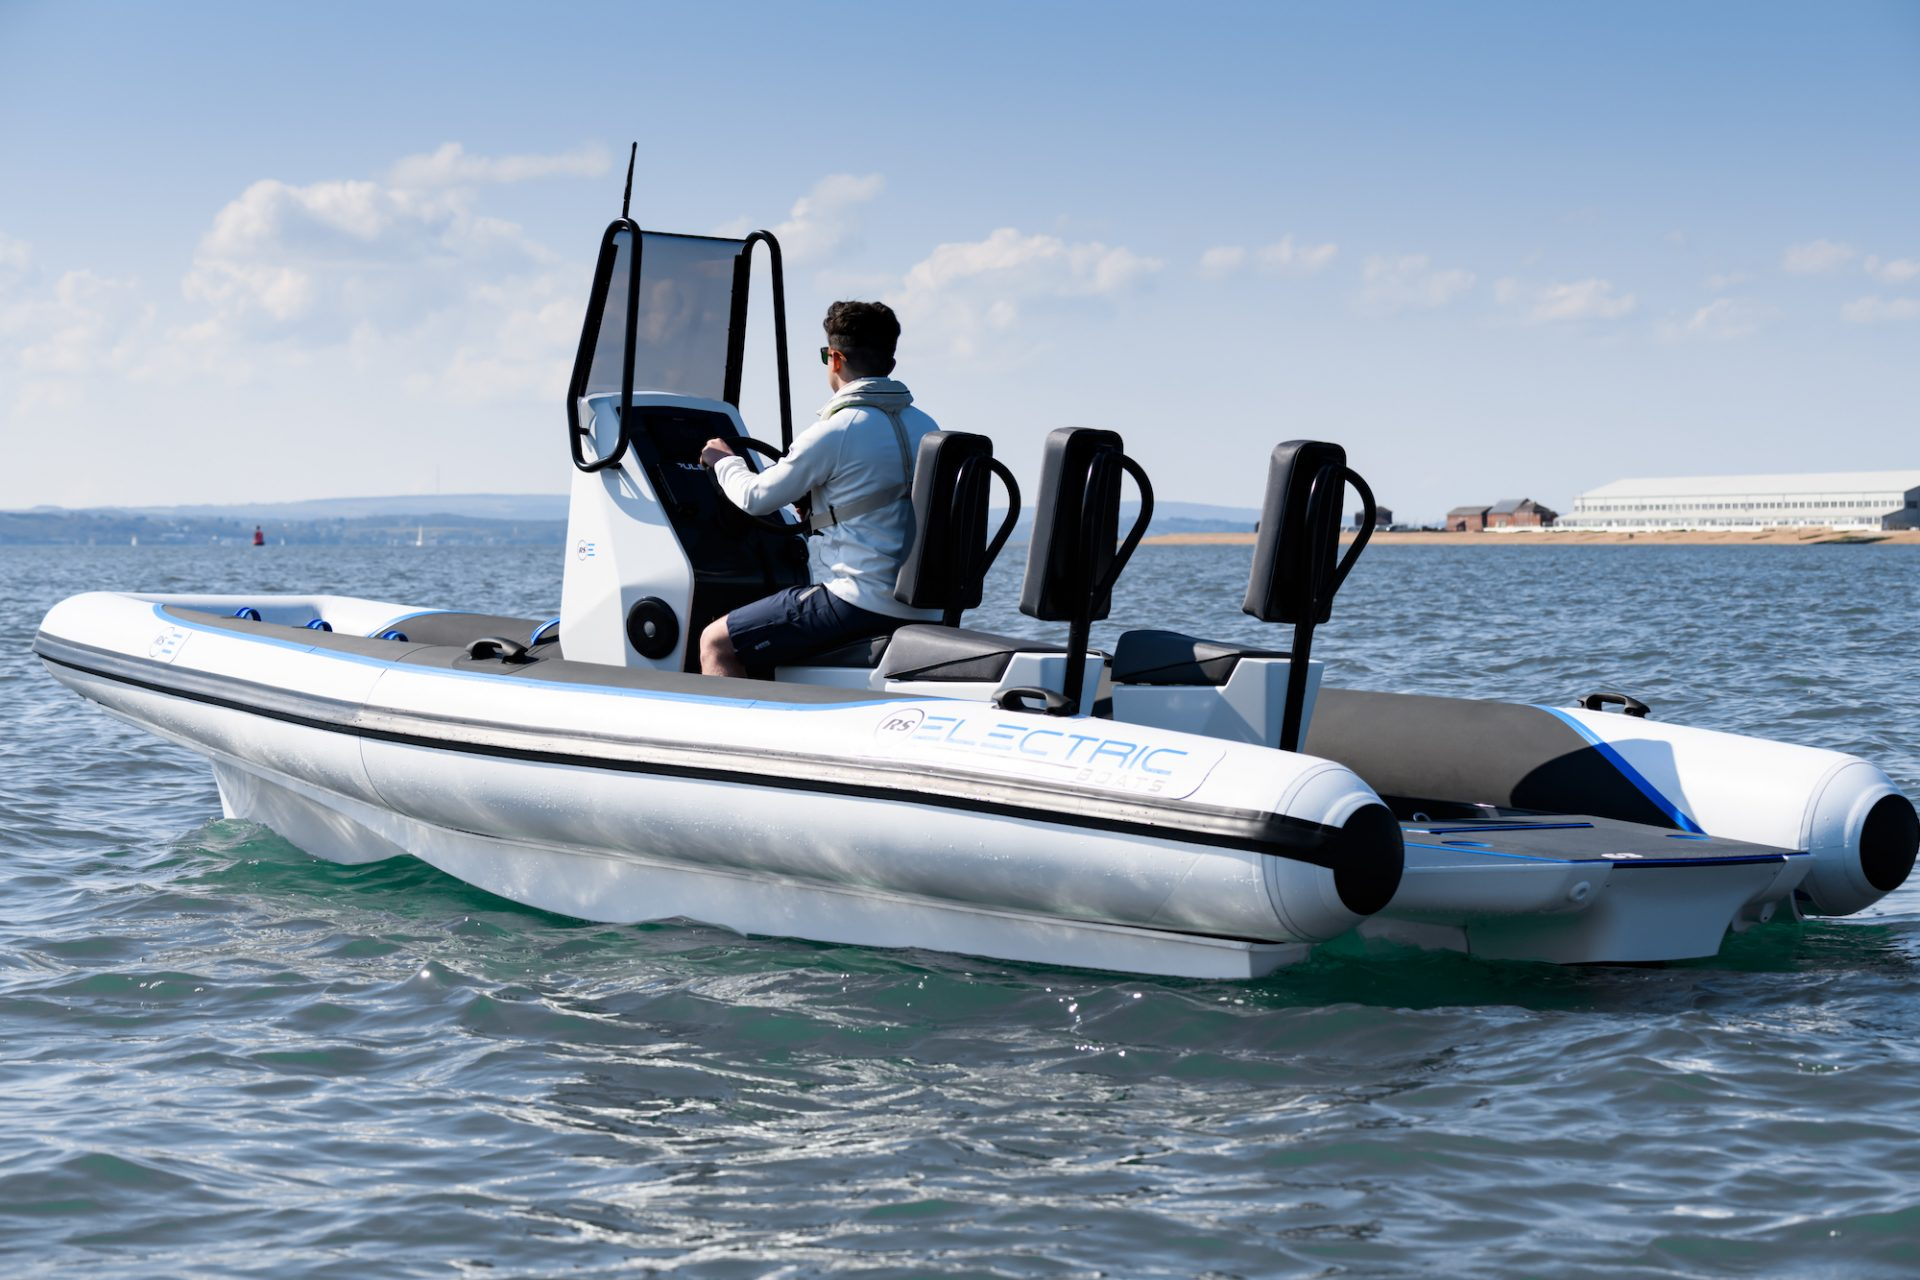 Pulse 63 Electric RIB - RS Electric Boats - Glimmer